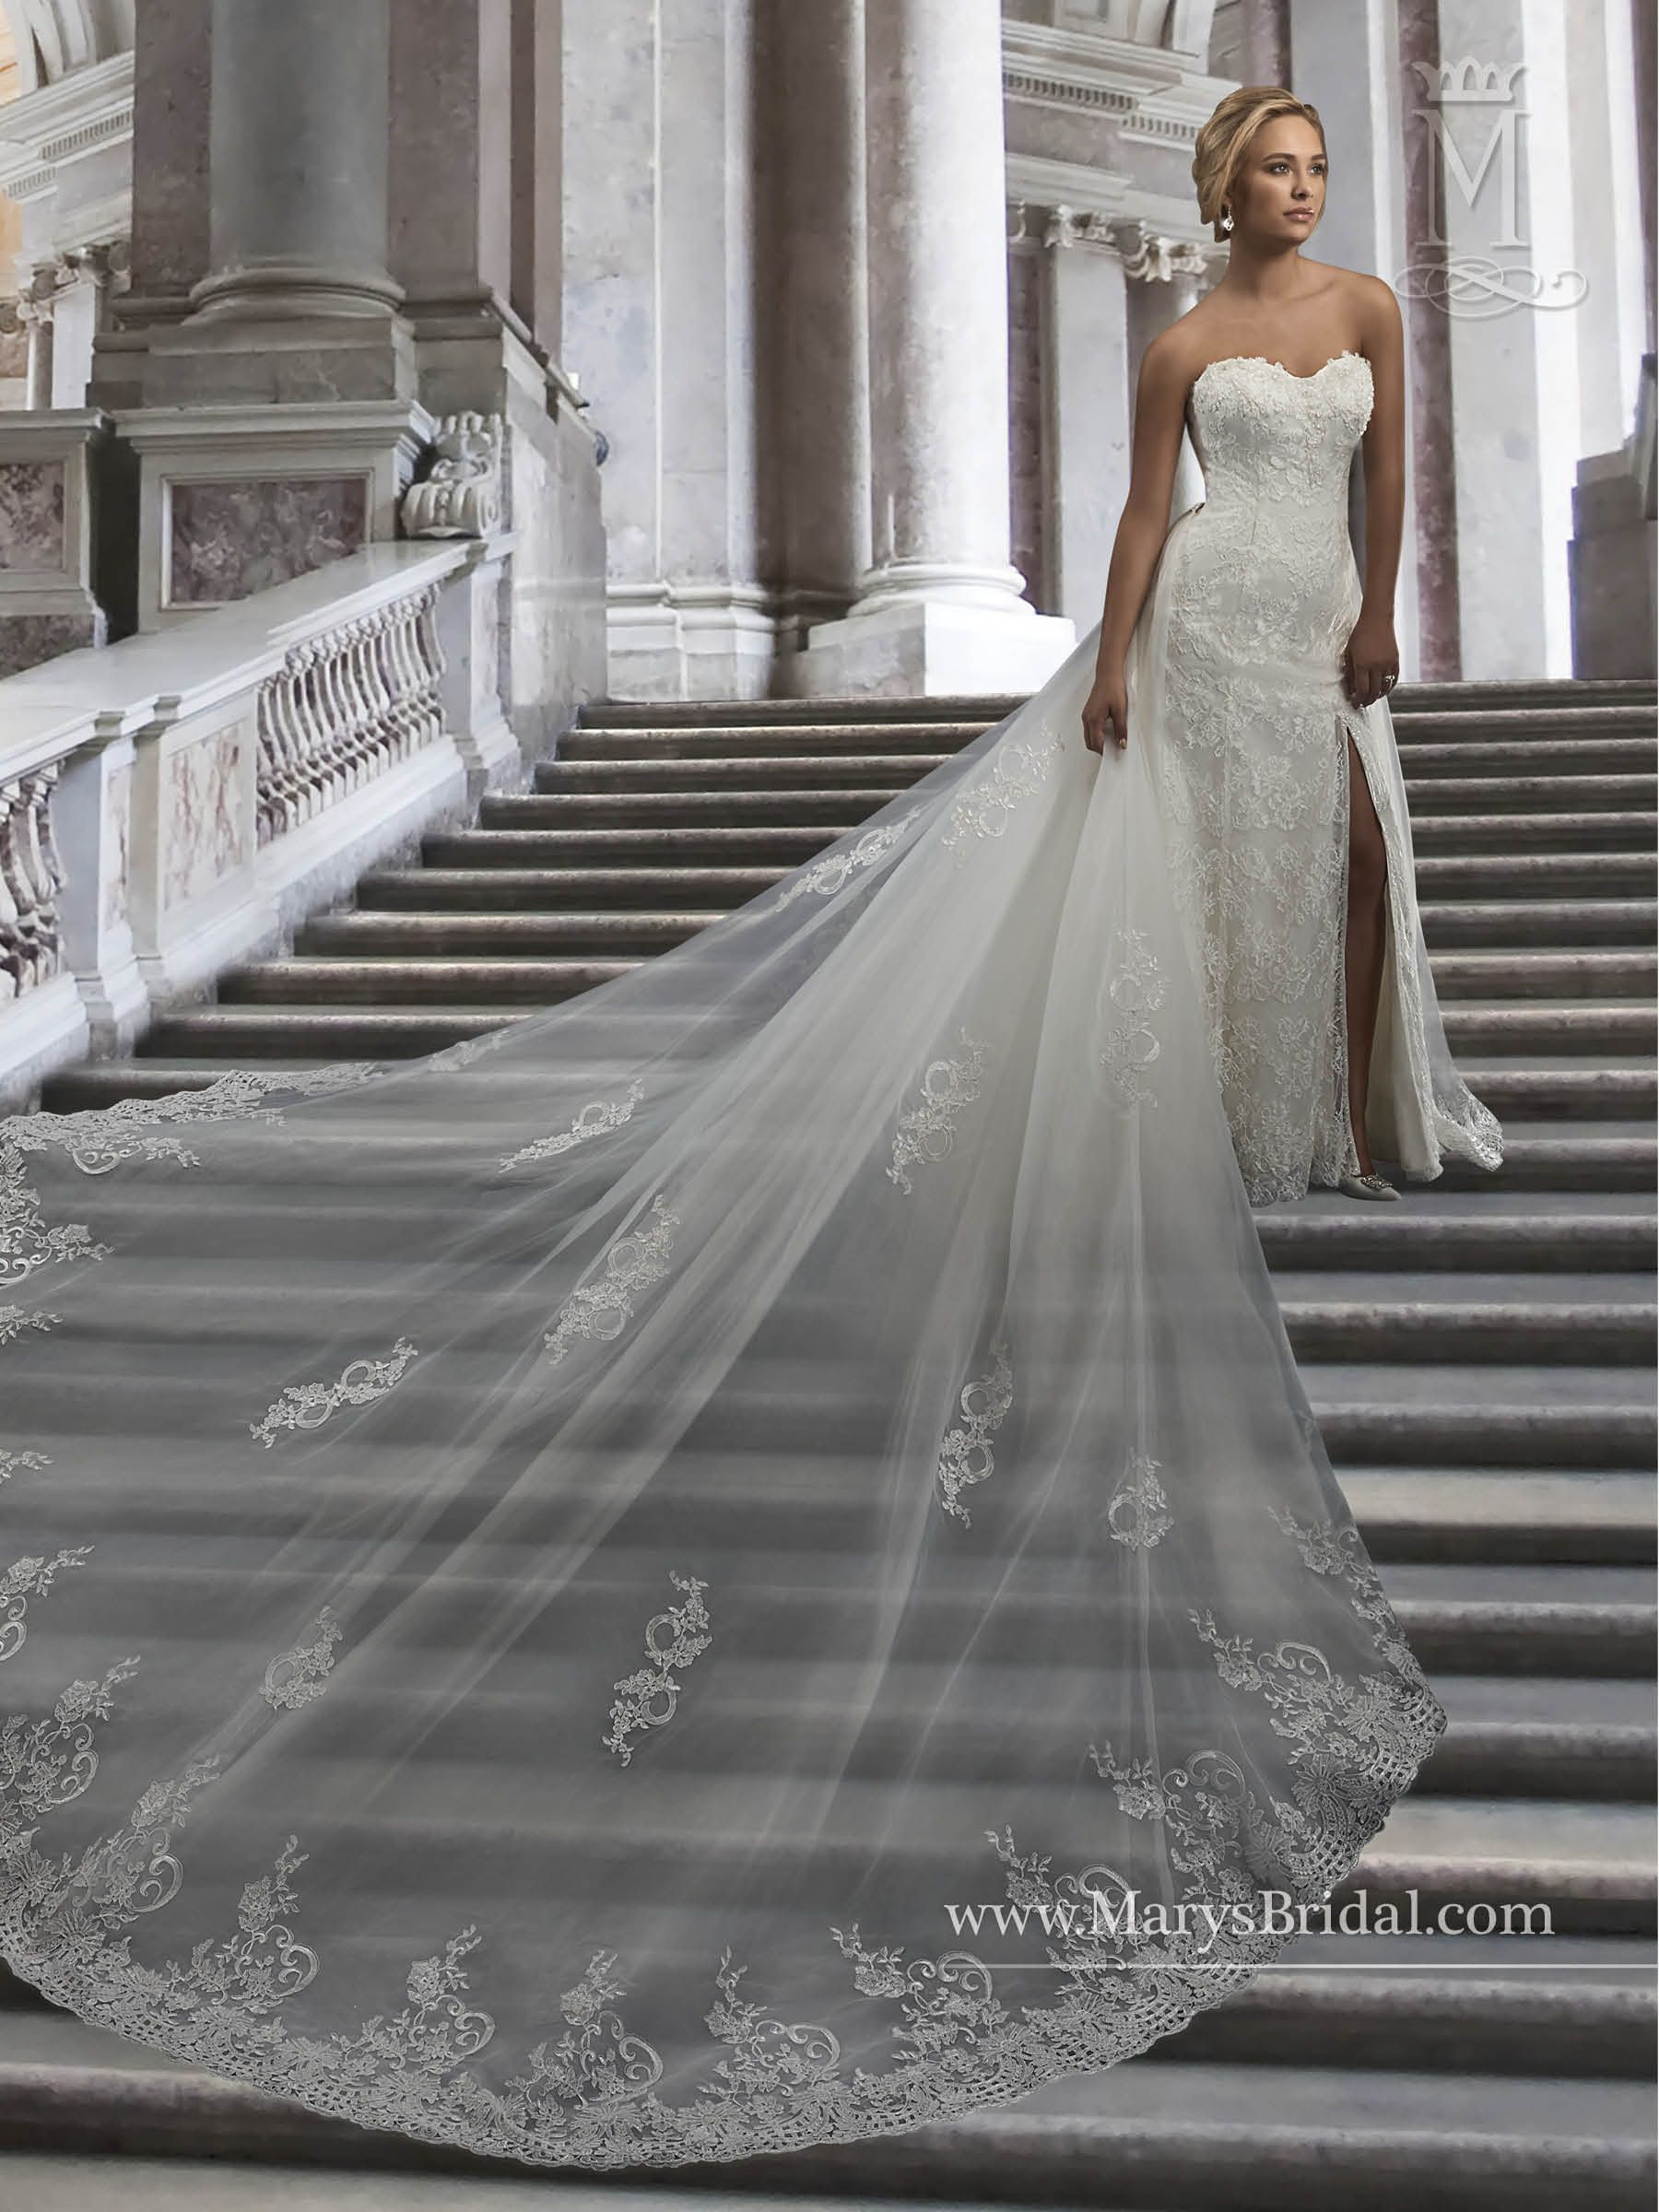 Collection Bridal Gowns Couture D Amour Style Description English Lace Gown With Strapless Sweetheart Neck Line Side On Skirt